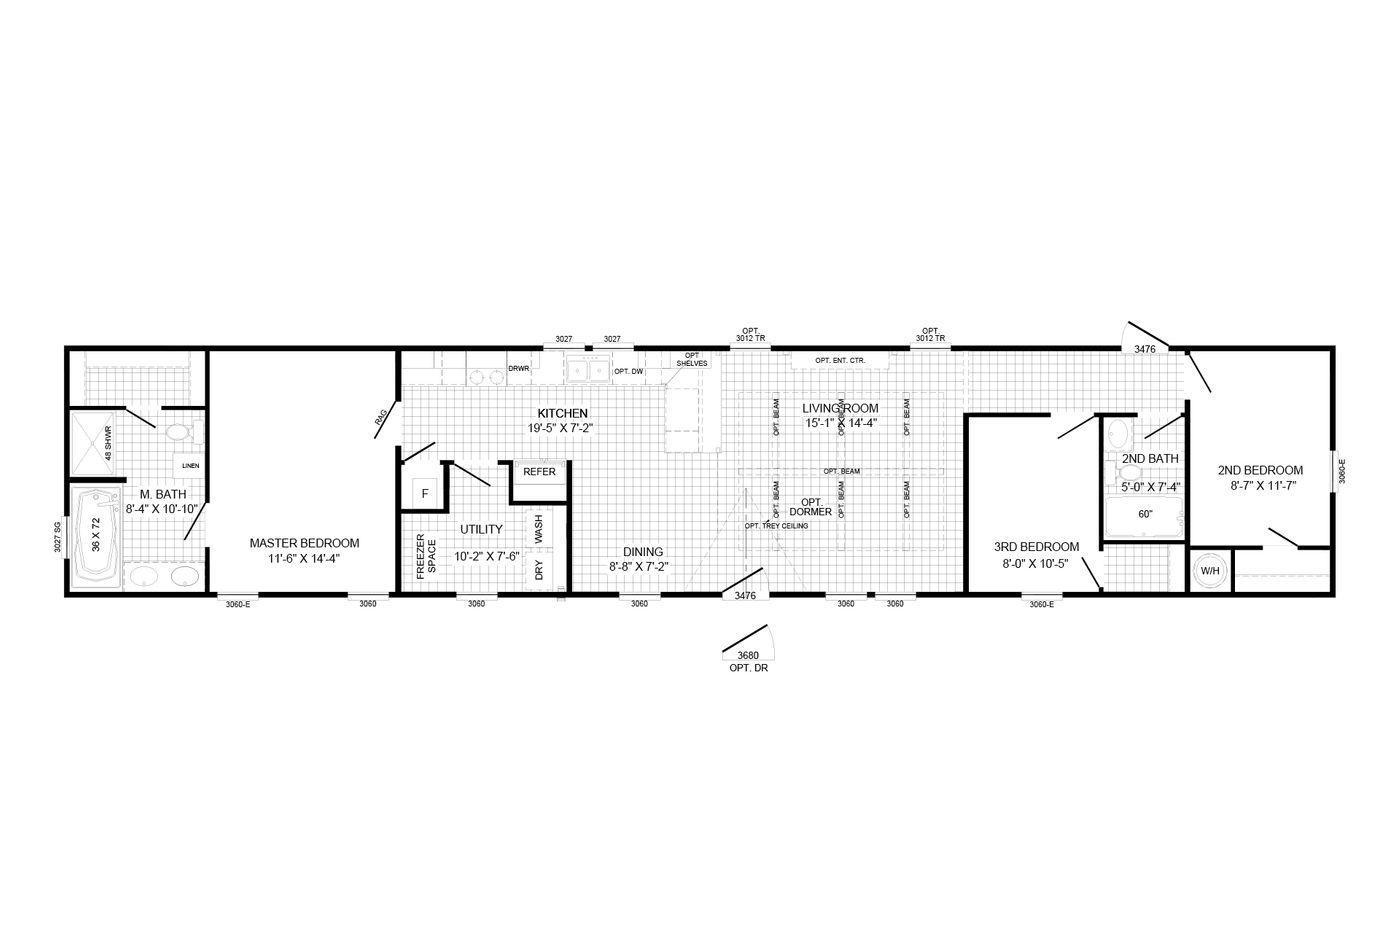 Floorplan of The Eli Mae Manufactured Home From Worldwide Mobile Homes in Lumberton, TX